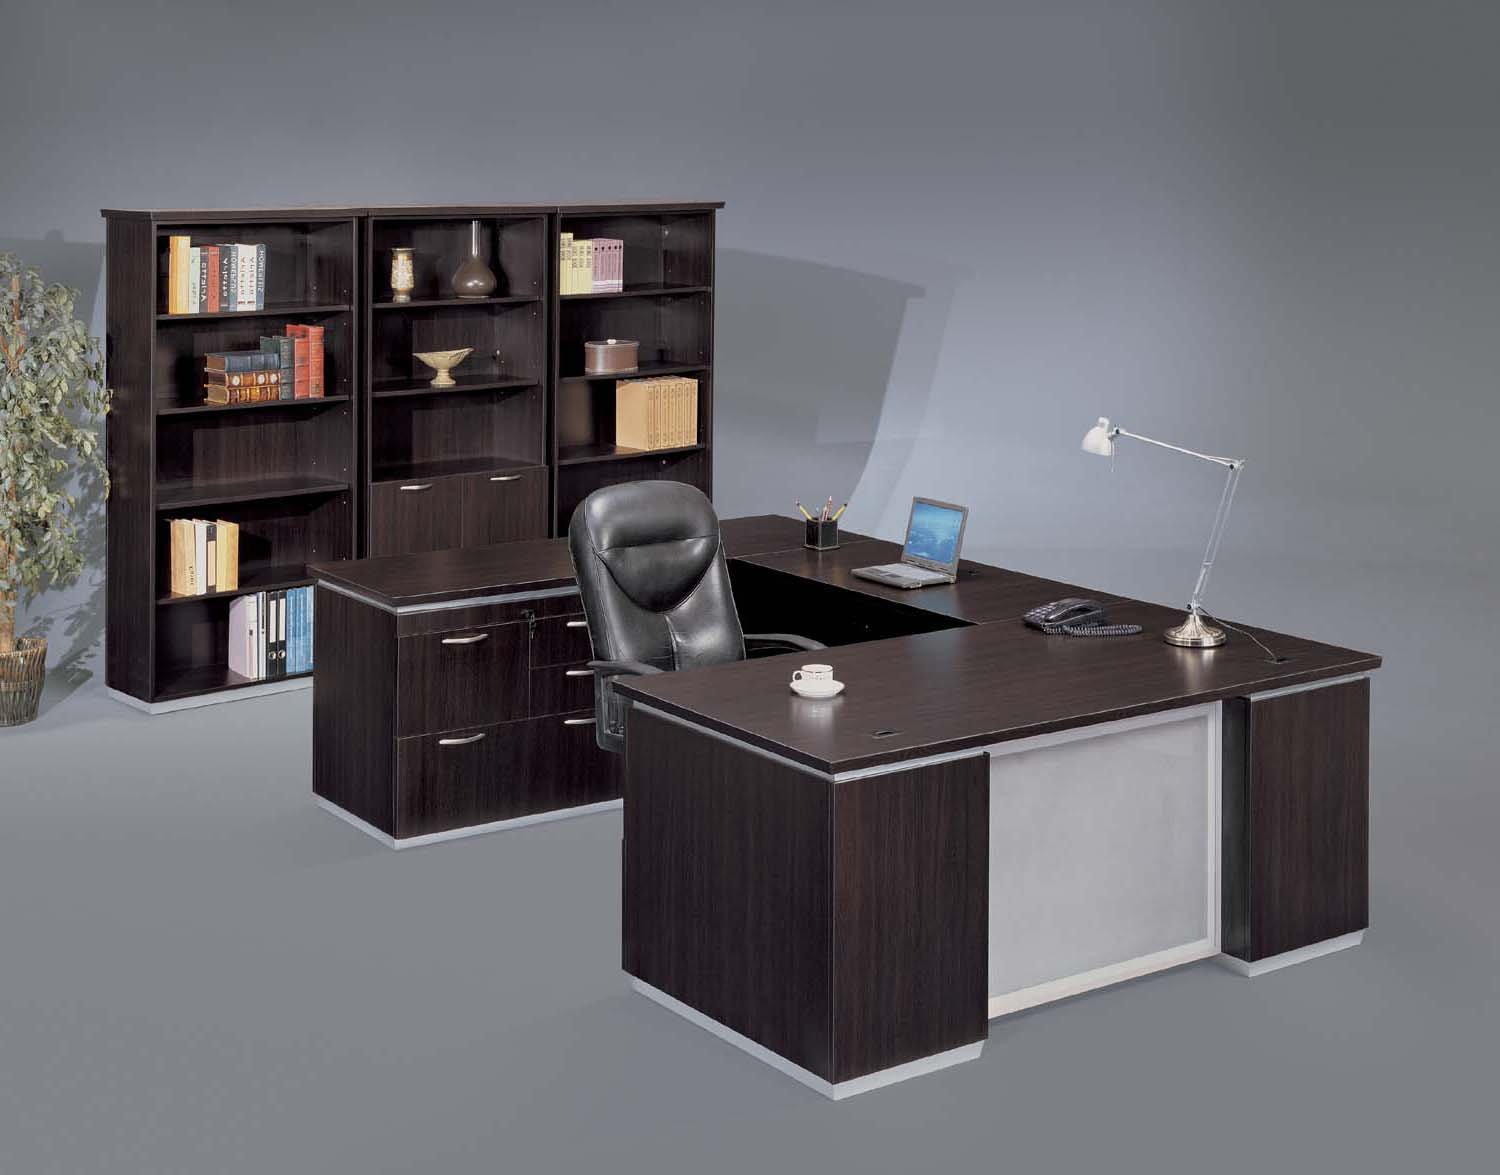 Flexsteel Pimlico  Left Personal File U Desk with Frosted Glass Modesty Panel